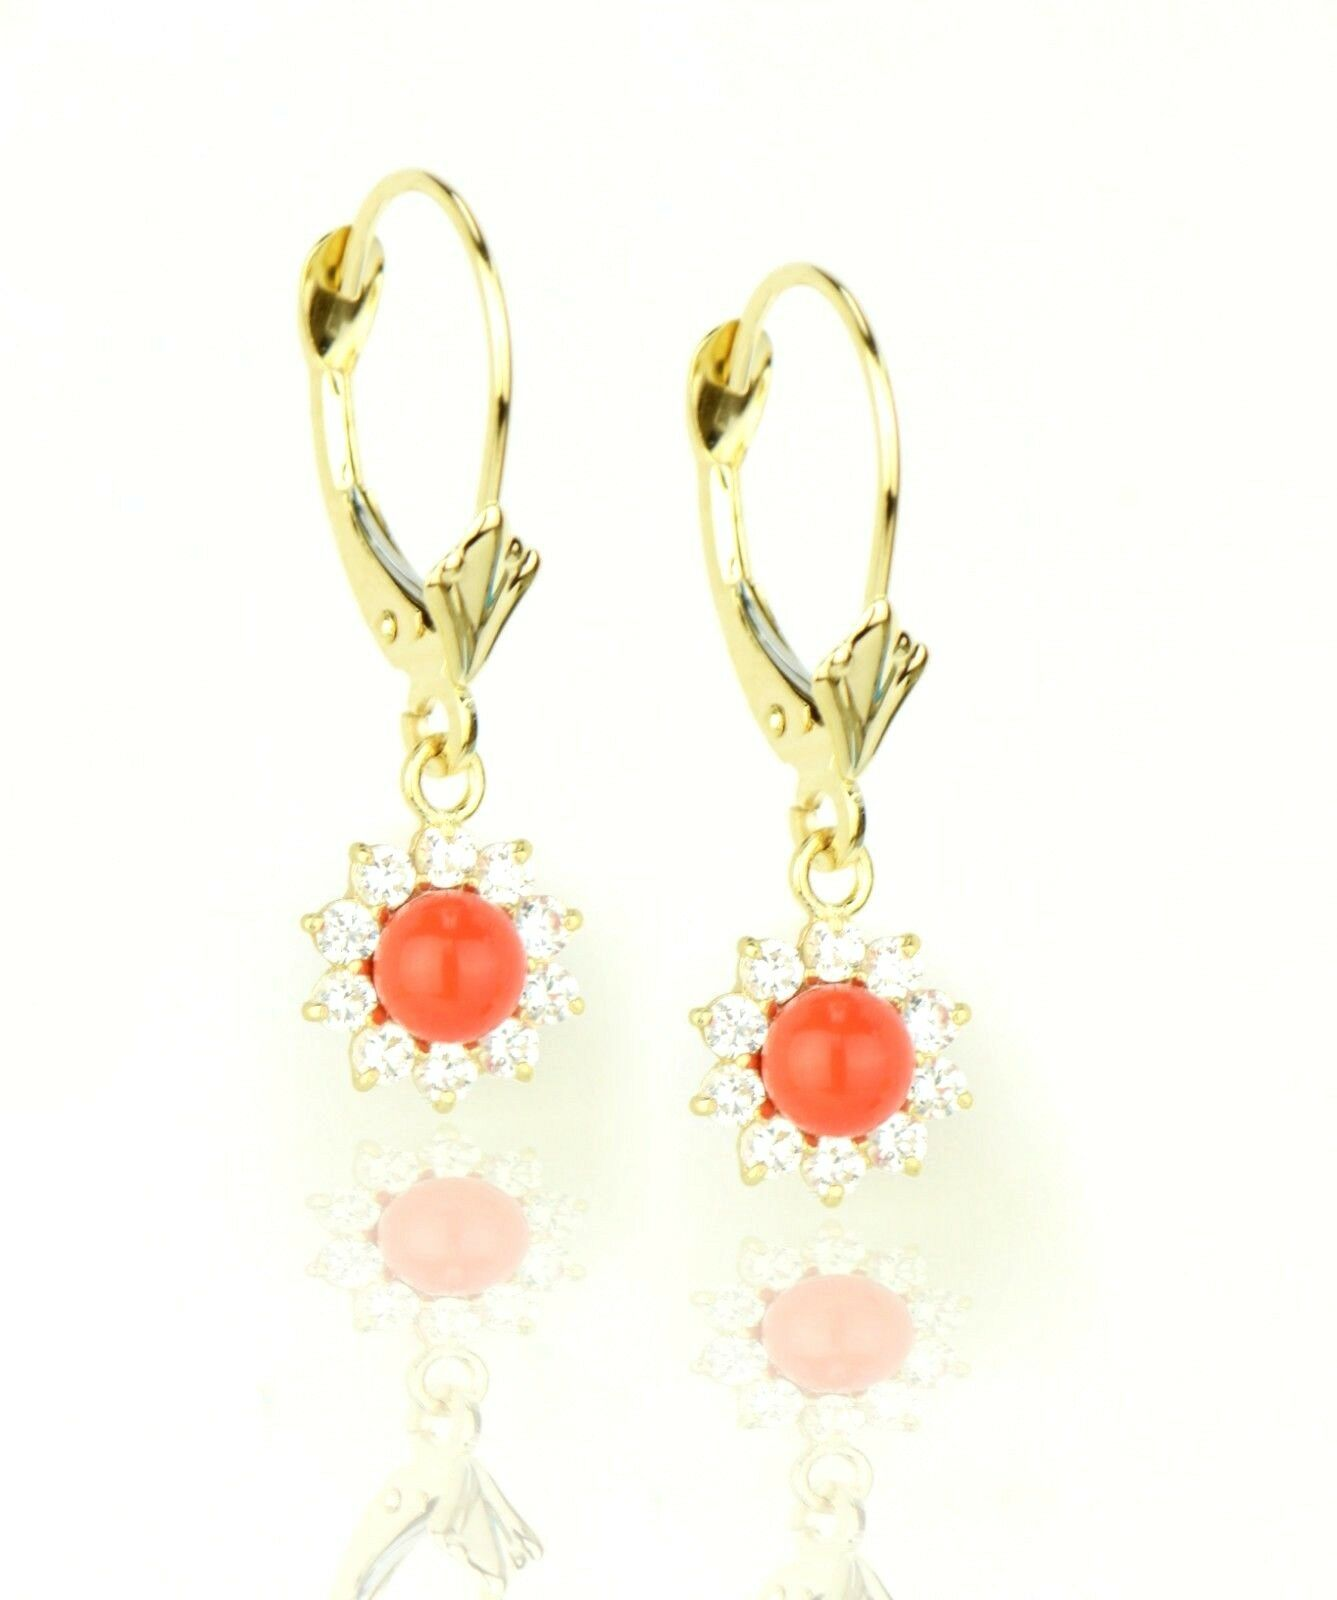 14K Yellow gold Flower Dangle Earrings with Light Coral